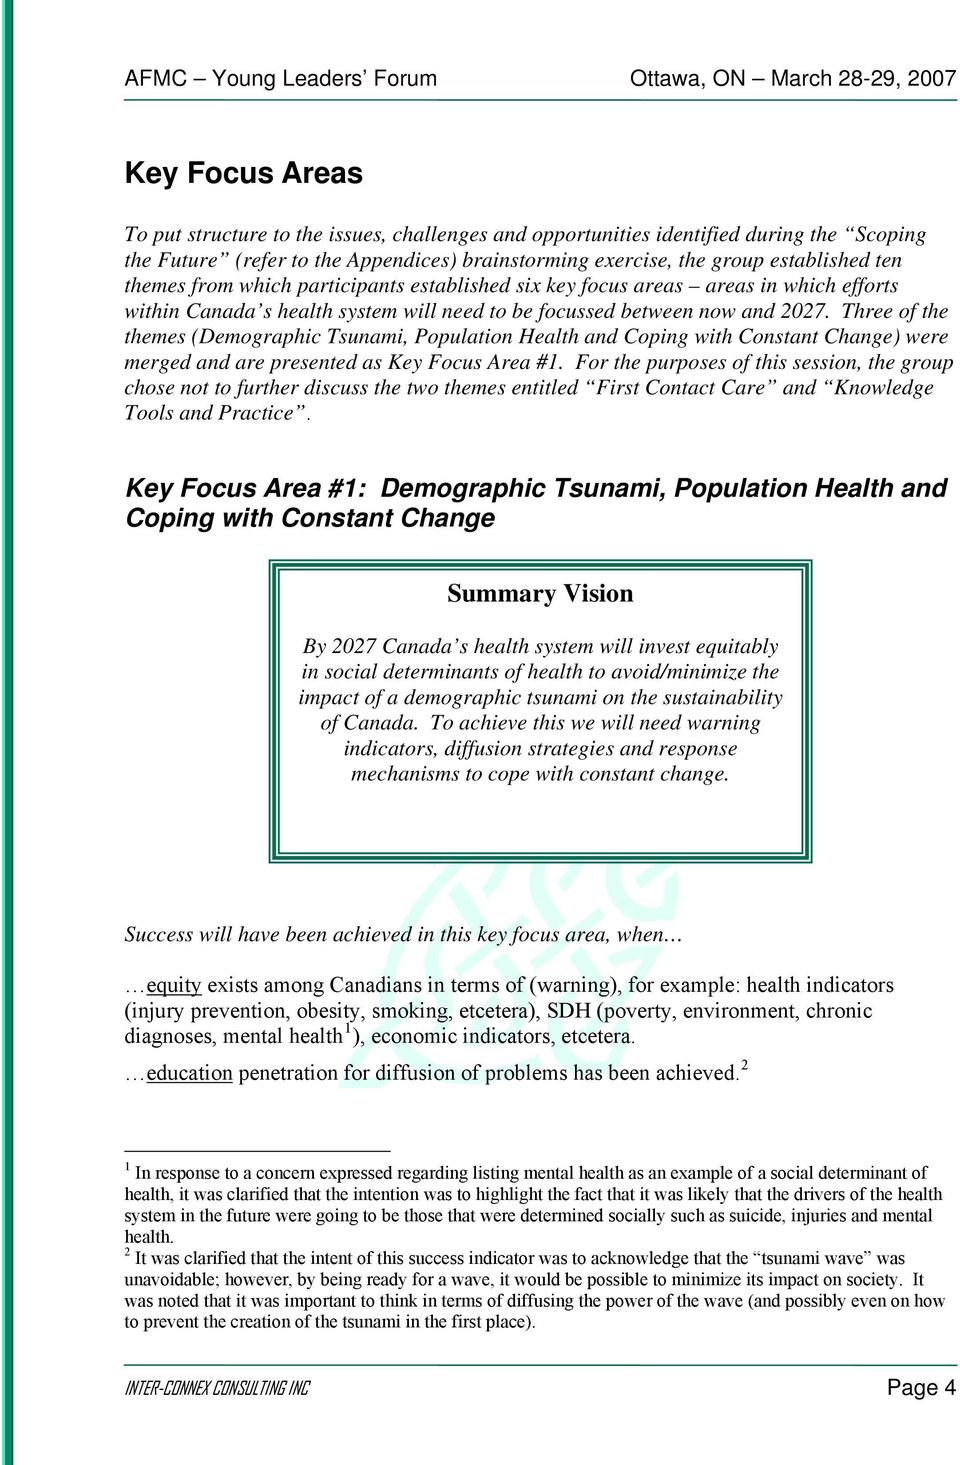 Three of the themes (Demographic Tsunami, Population Health and Coping with Constant Change) were merged and are presented as Key Focus Area #1.